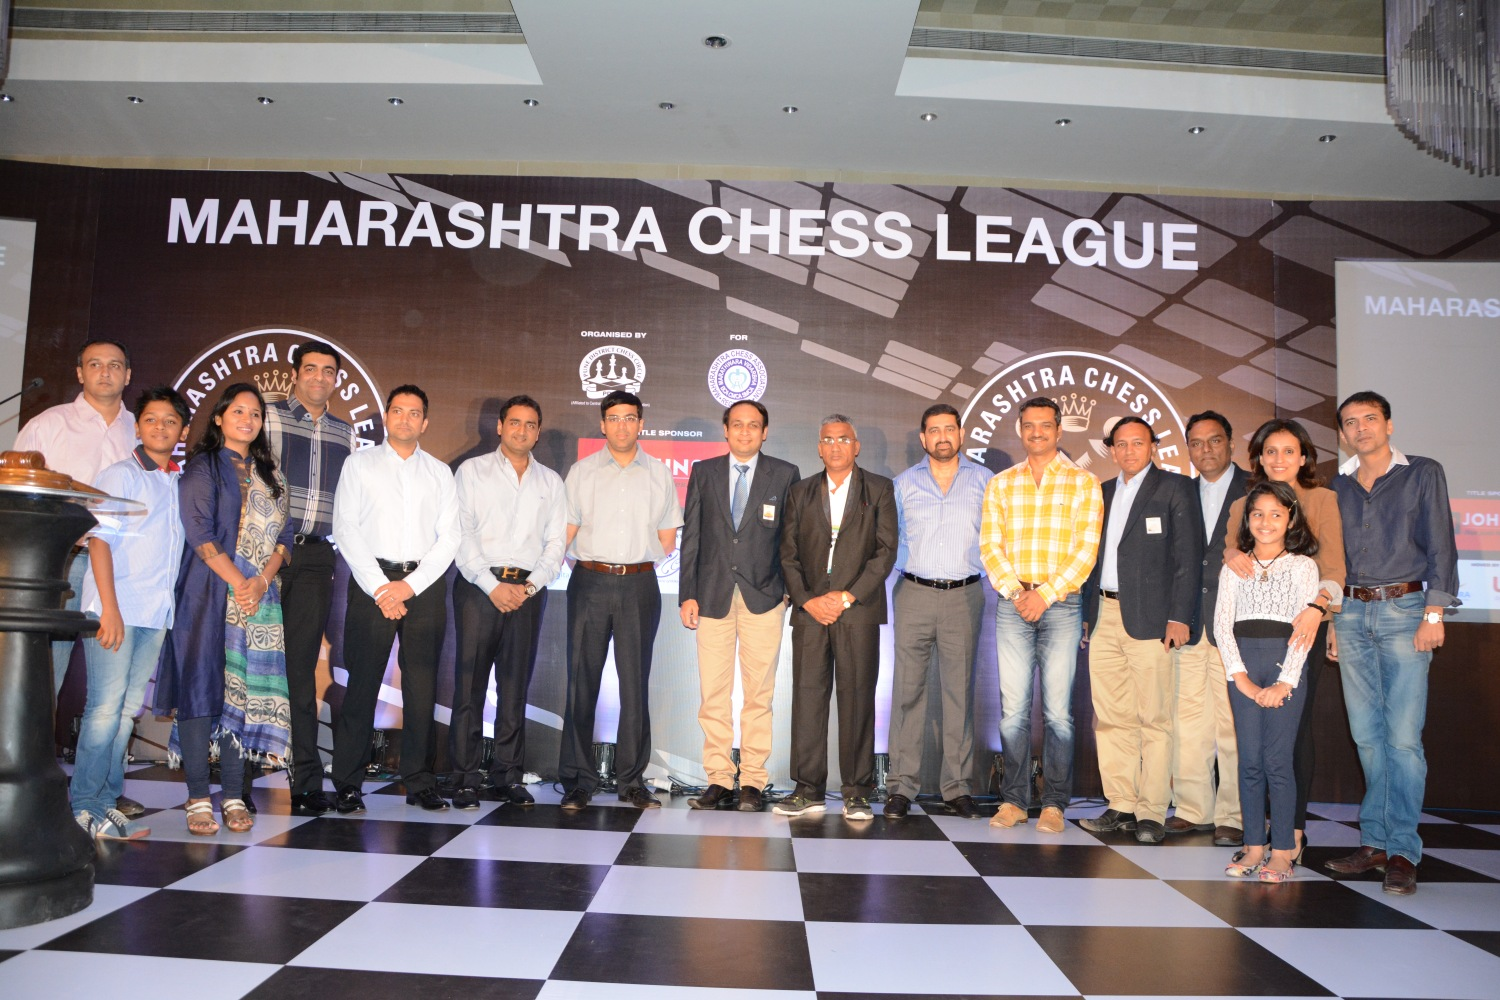 All the team owners with the chief guests